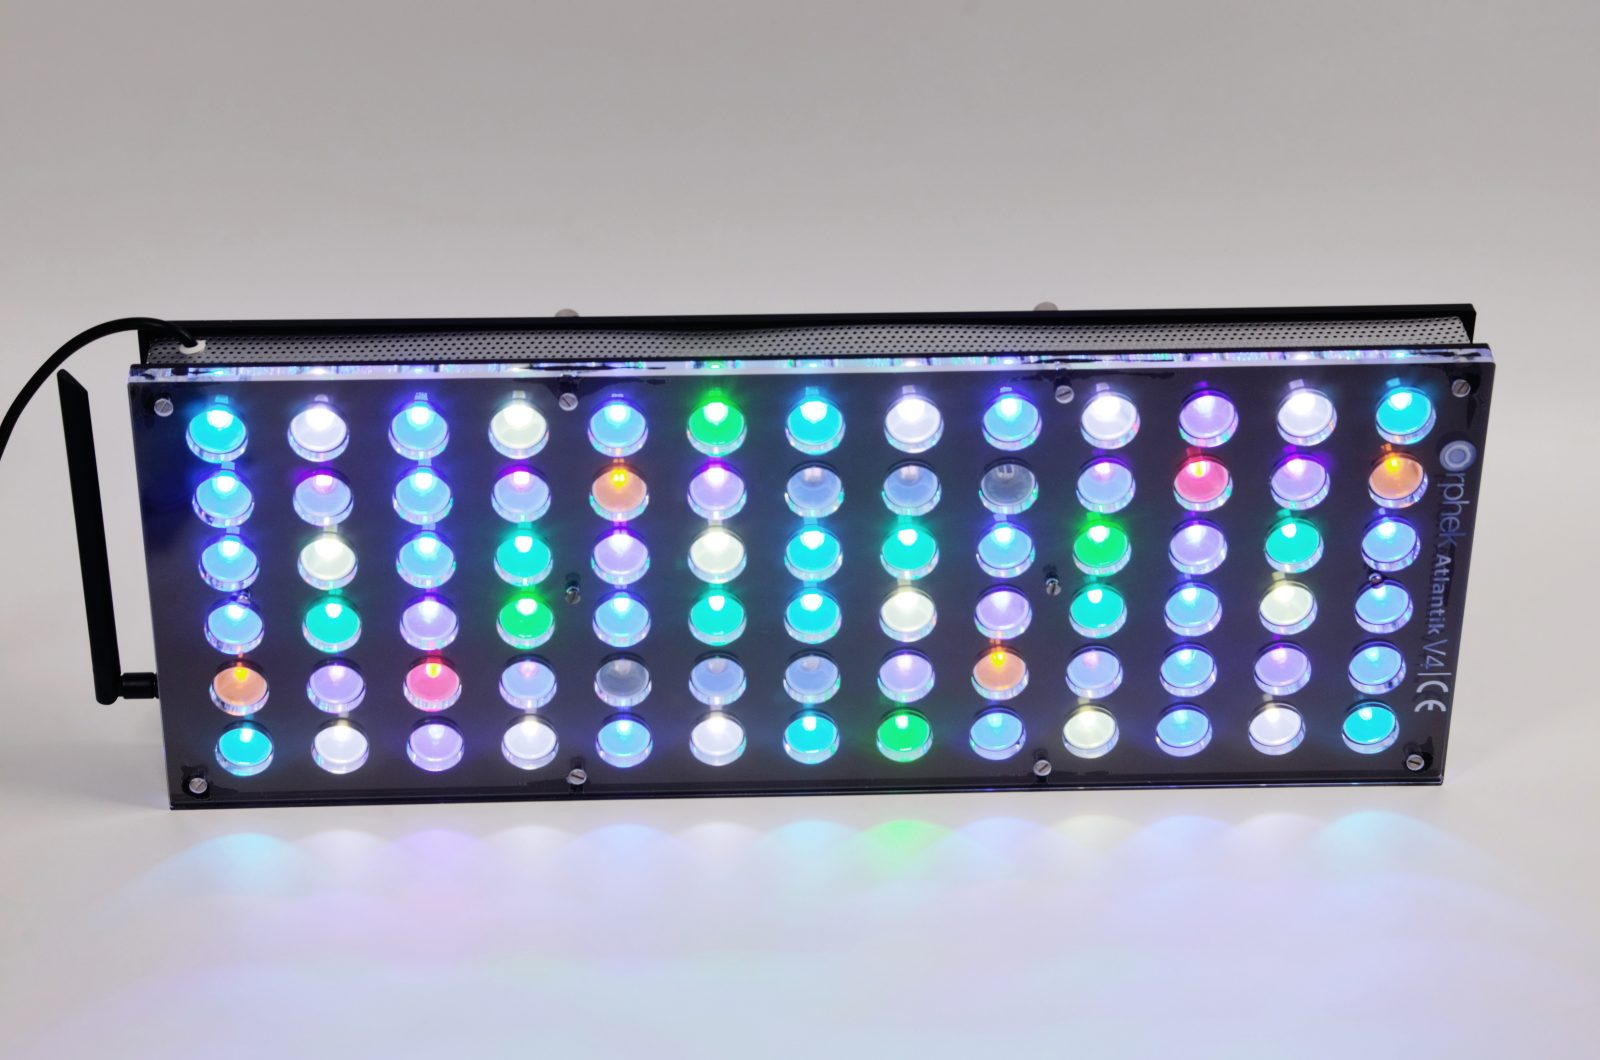 Atlantik V4 Reef Aquarium lampu LED